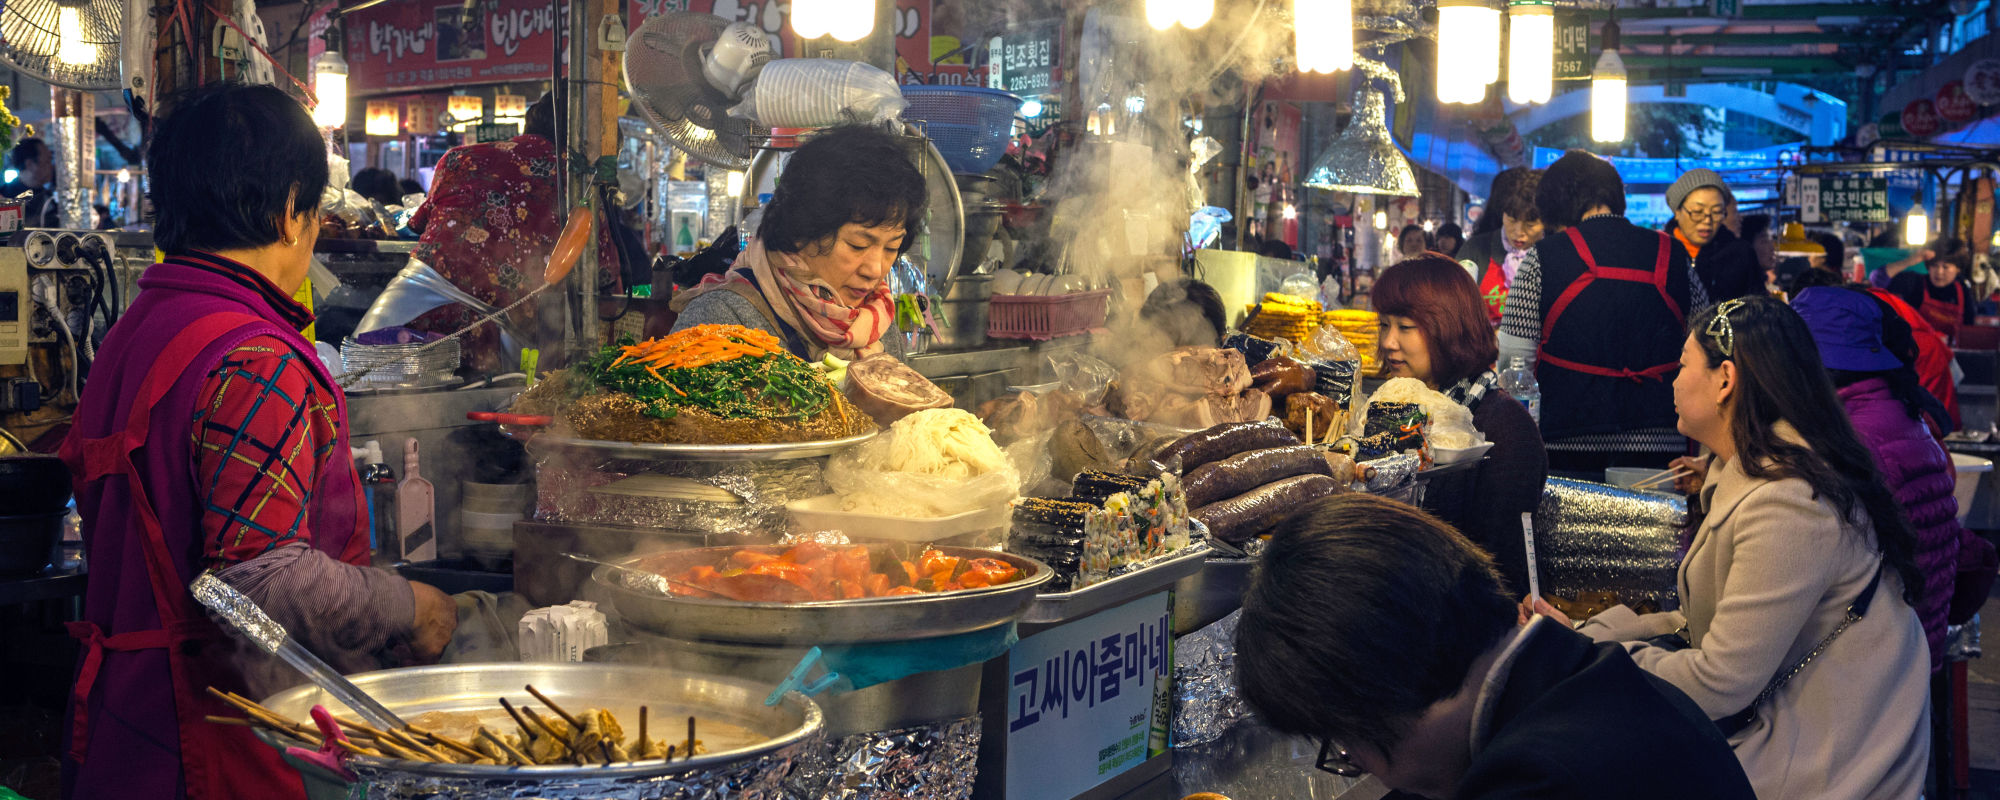 Dongdaemun Market, Dongdaemun District, Seoul, South Korea, Asia